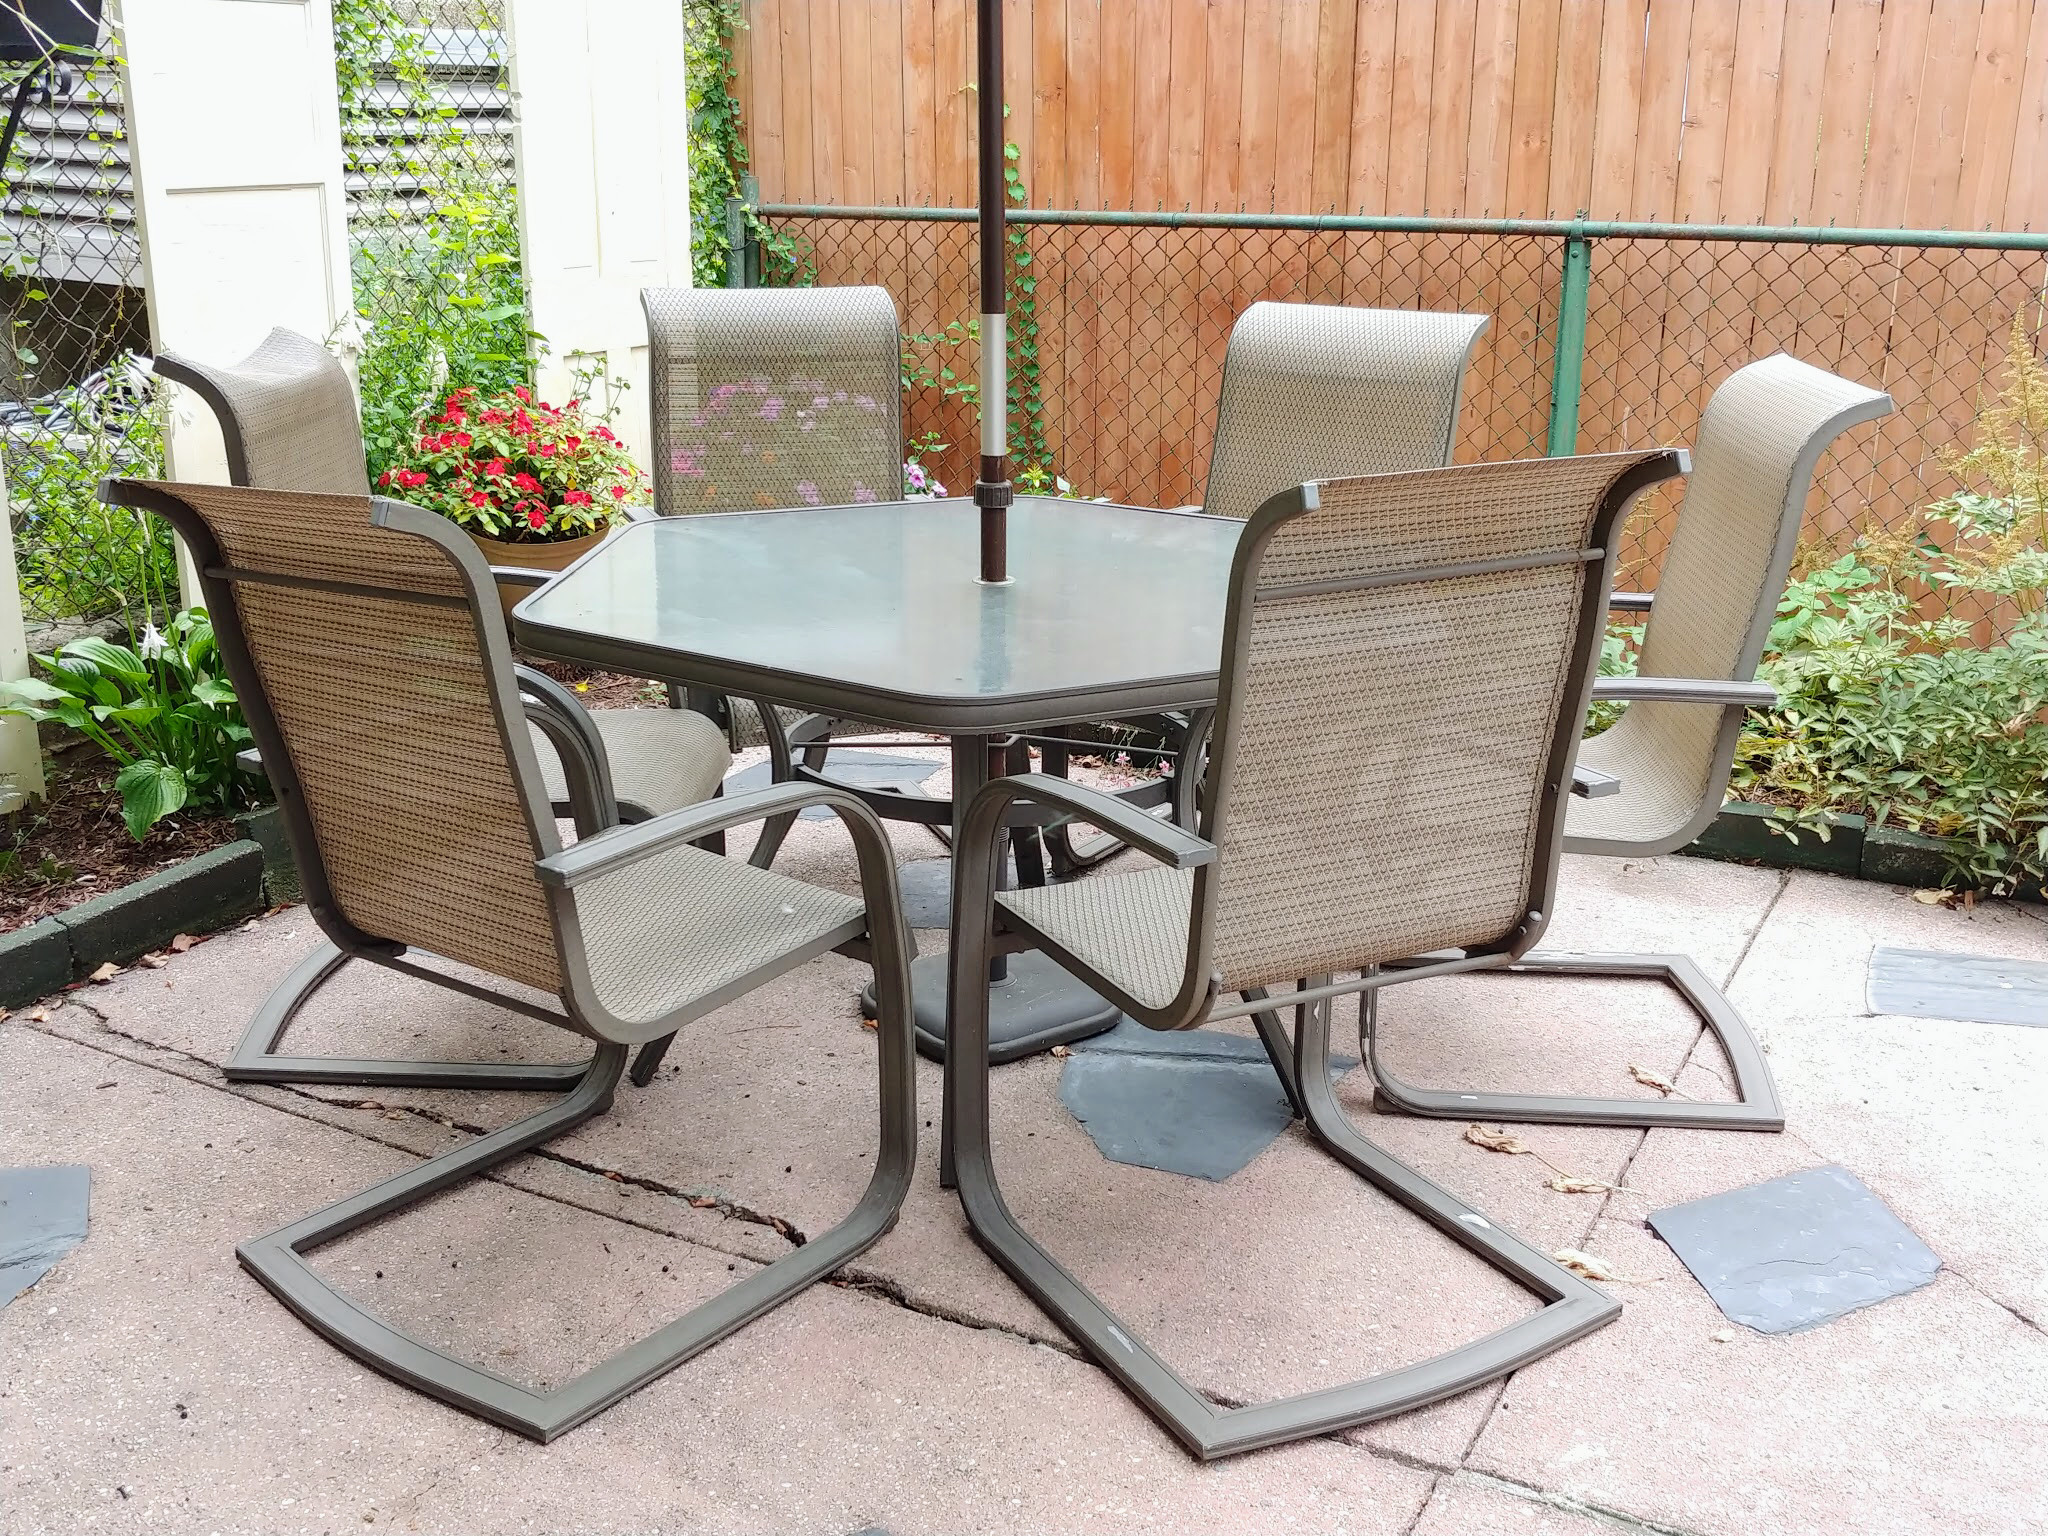 Outdoor Dining Table w/ 6 Chairs